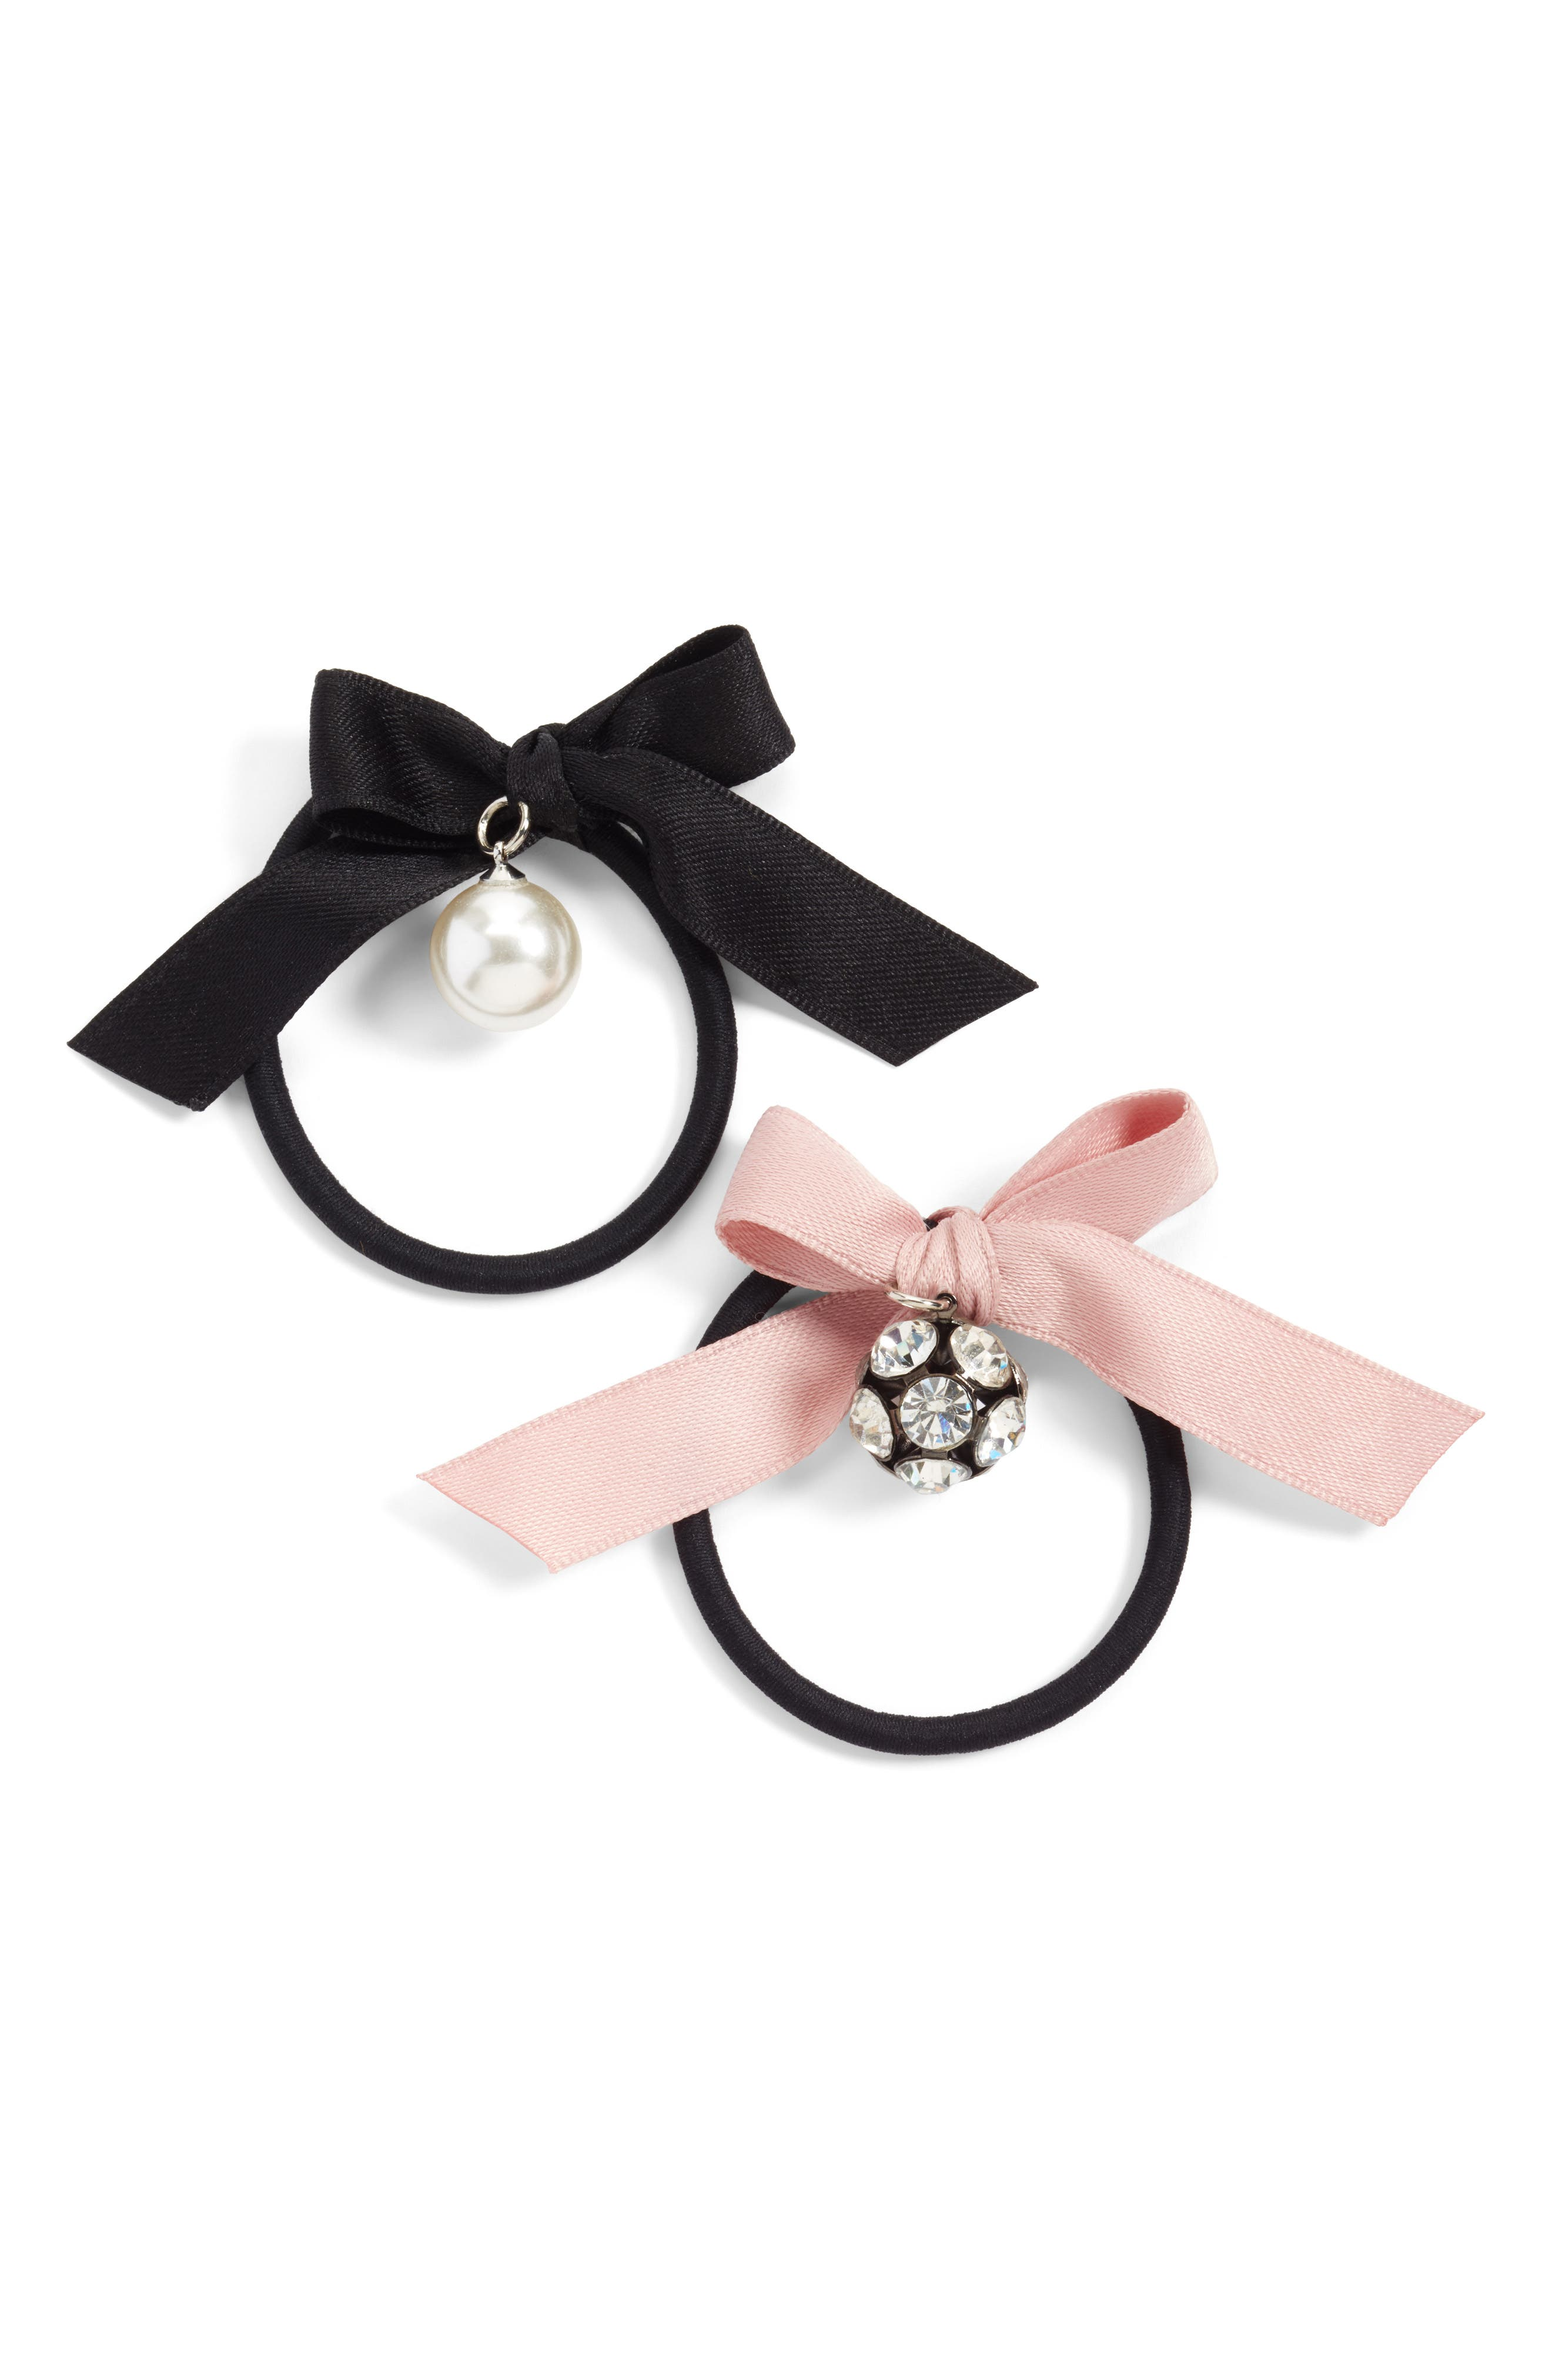 2-Pack Bow with Imitation Pearl & Crystal Charm Ponytail Holders,                         Main,                         color, 005